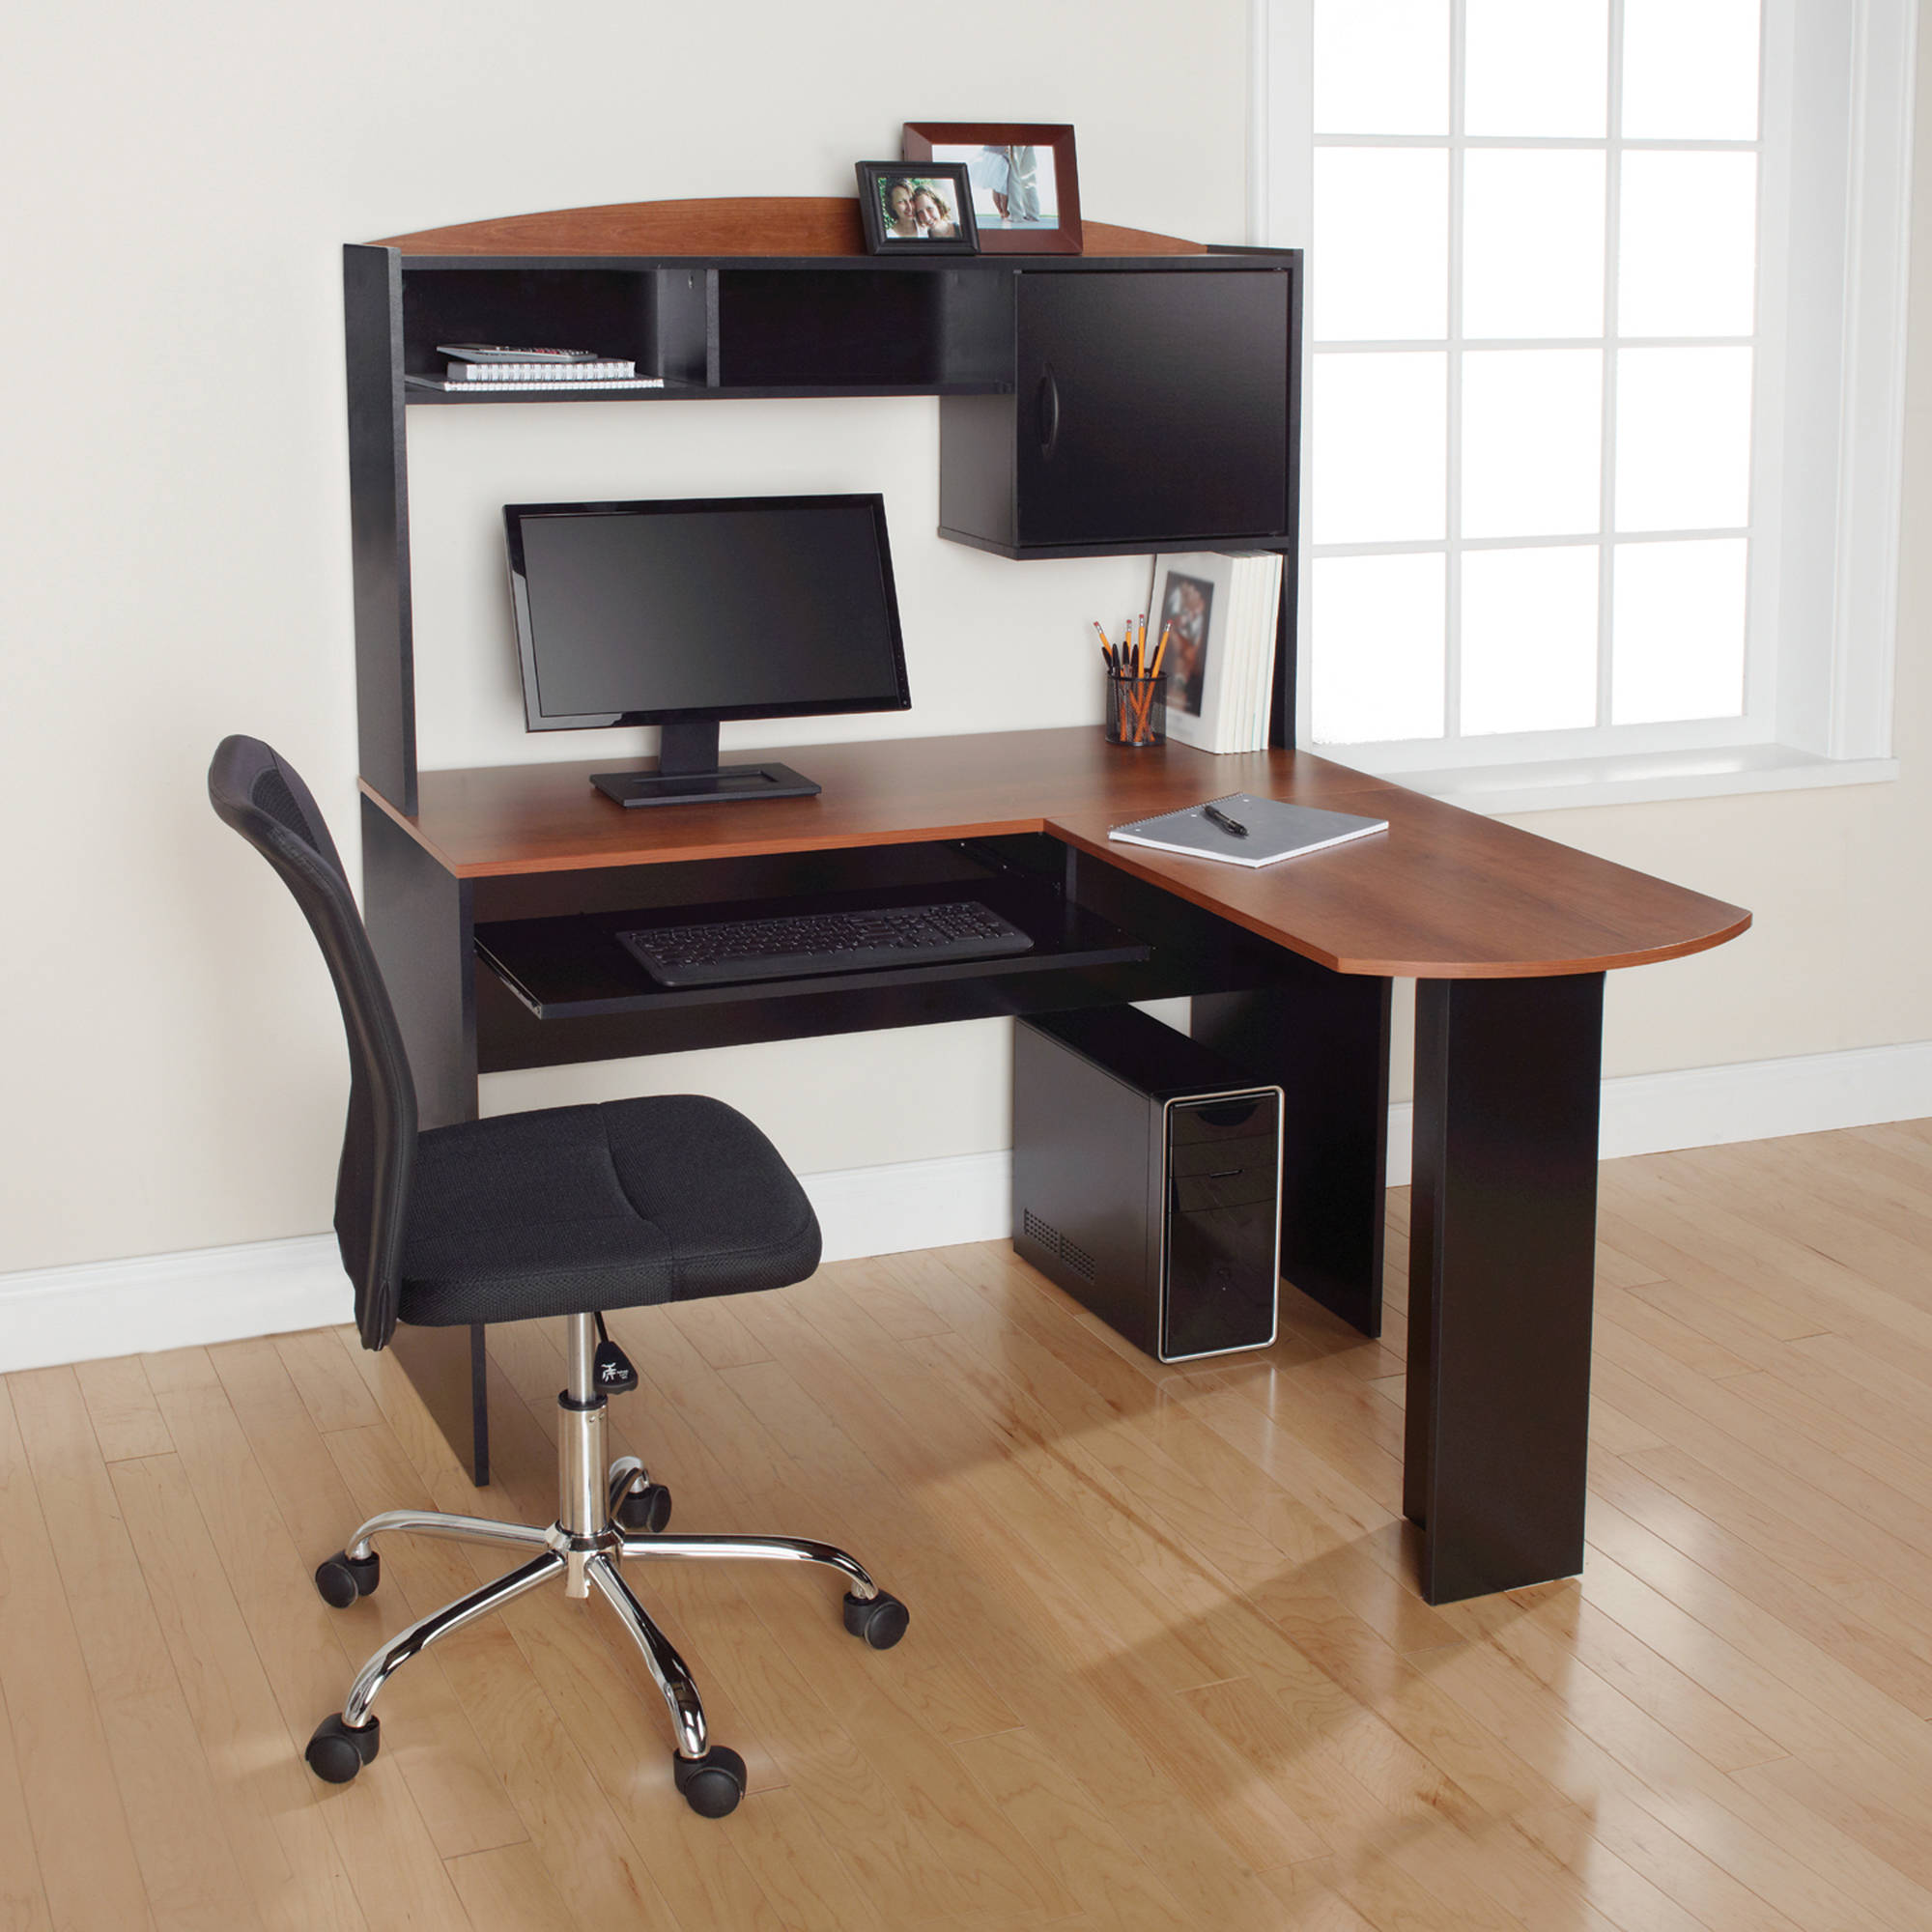 Office Desk Walmart Best Choice Products Wood L Shape Corner Computer Desk  Pc Laptop Part 19